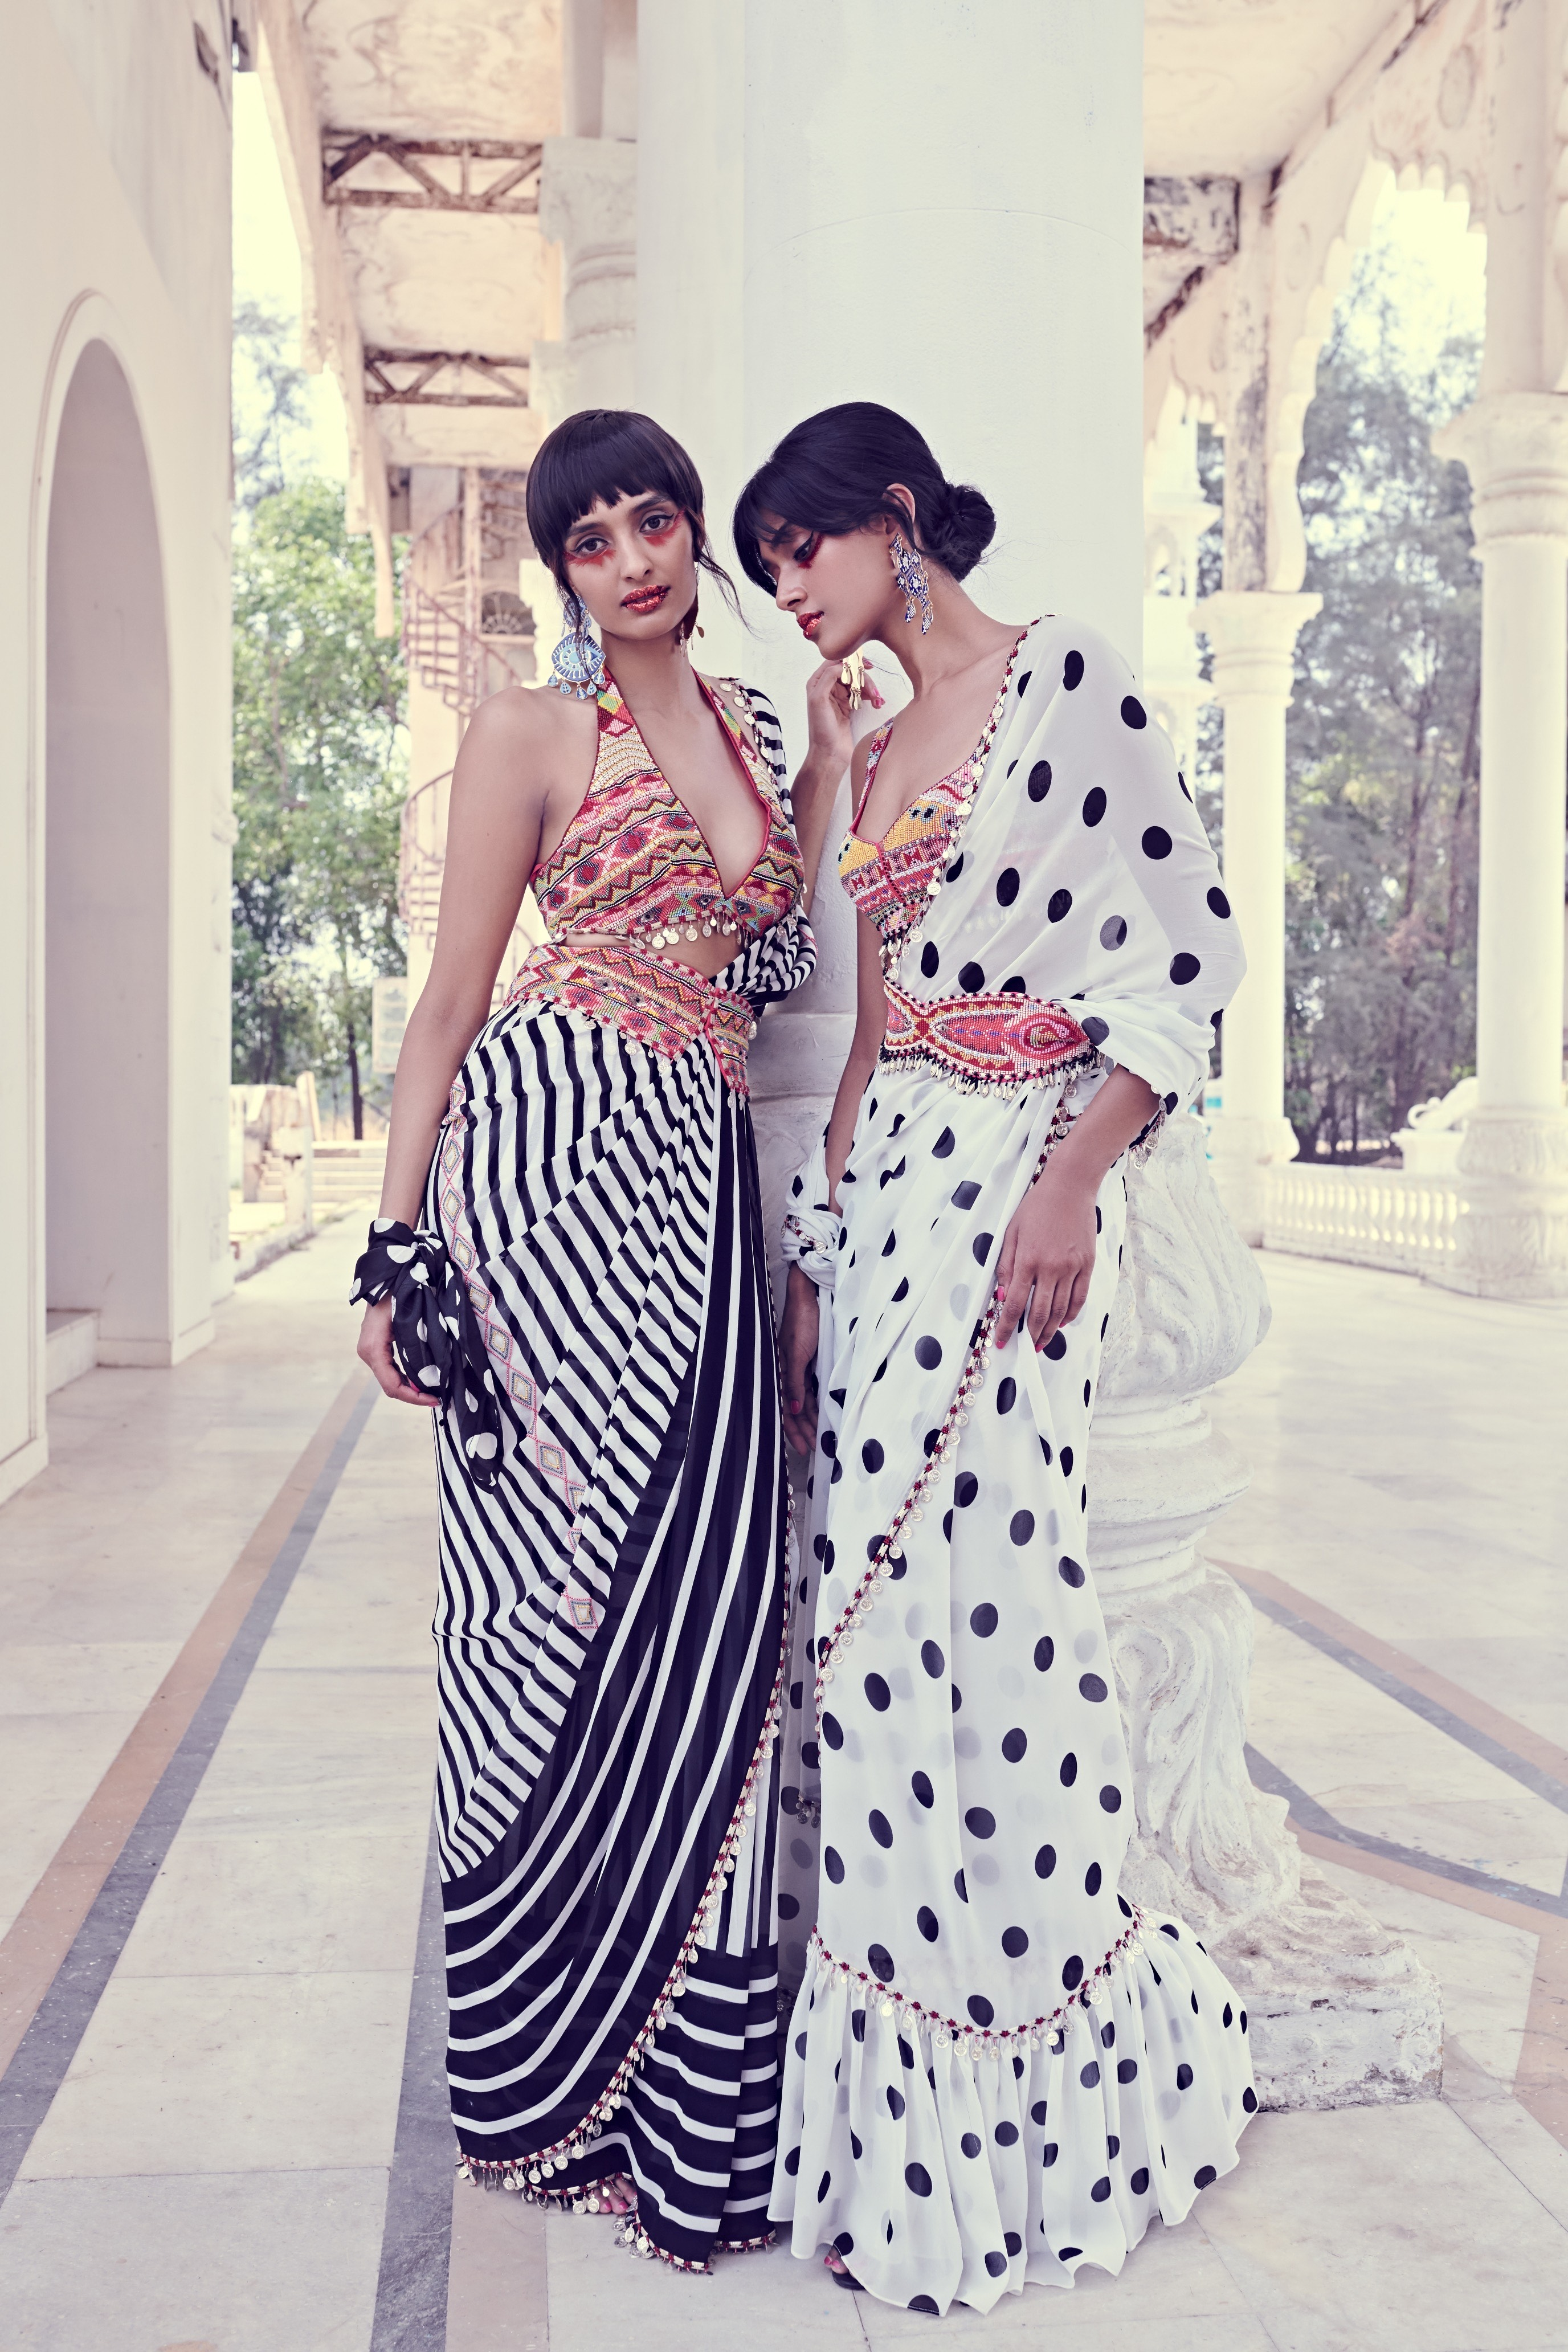 Polka and stripe sarees with beautifully embellished bohemian blouses and belts